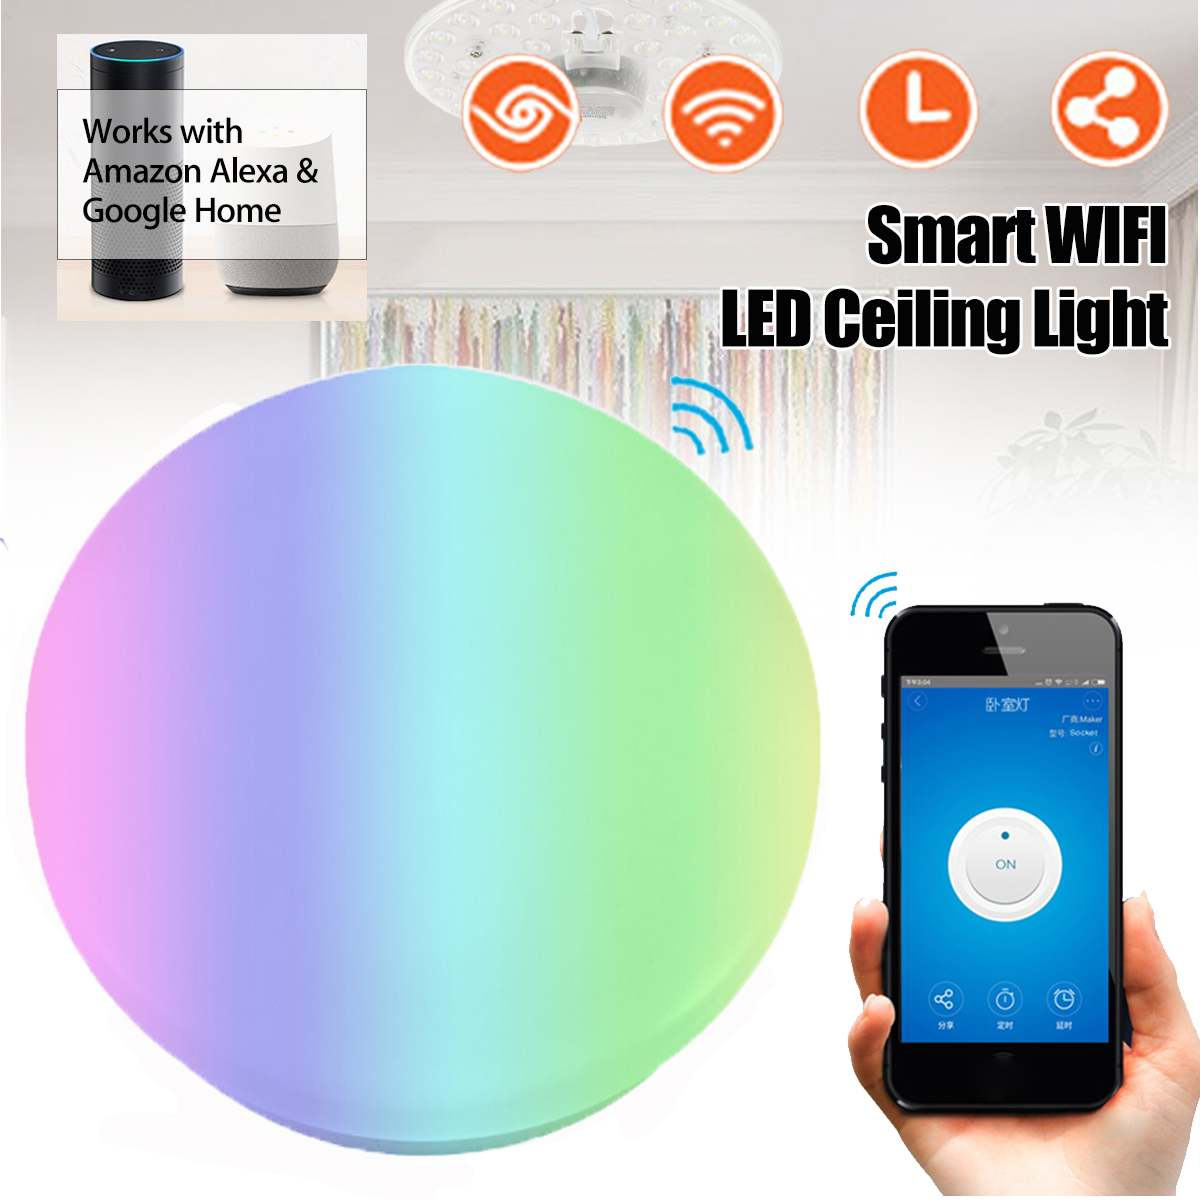 Modern LED Wifi Wireless Ceiling Lights 48W RGB+W E27 B22 Dimmable Indoor Smart Ceiling Lights Work with Alexa Google HomeModern LED Wifi Wireless Ceiling Lights 48W RGB+W E27 B22 Dimmable Indoor Smart Ceiling Lights Work with Alexa Google Home